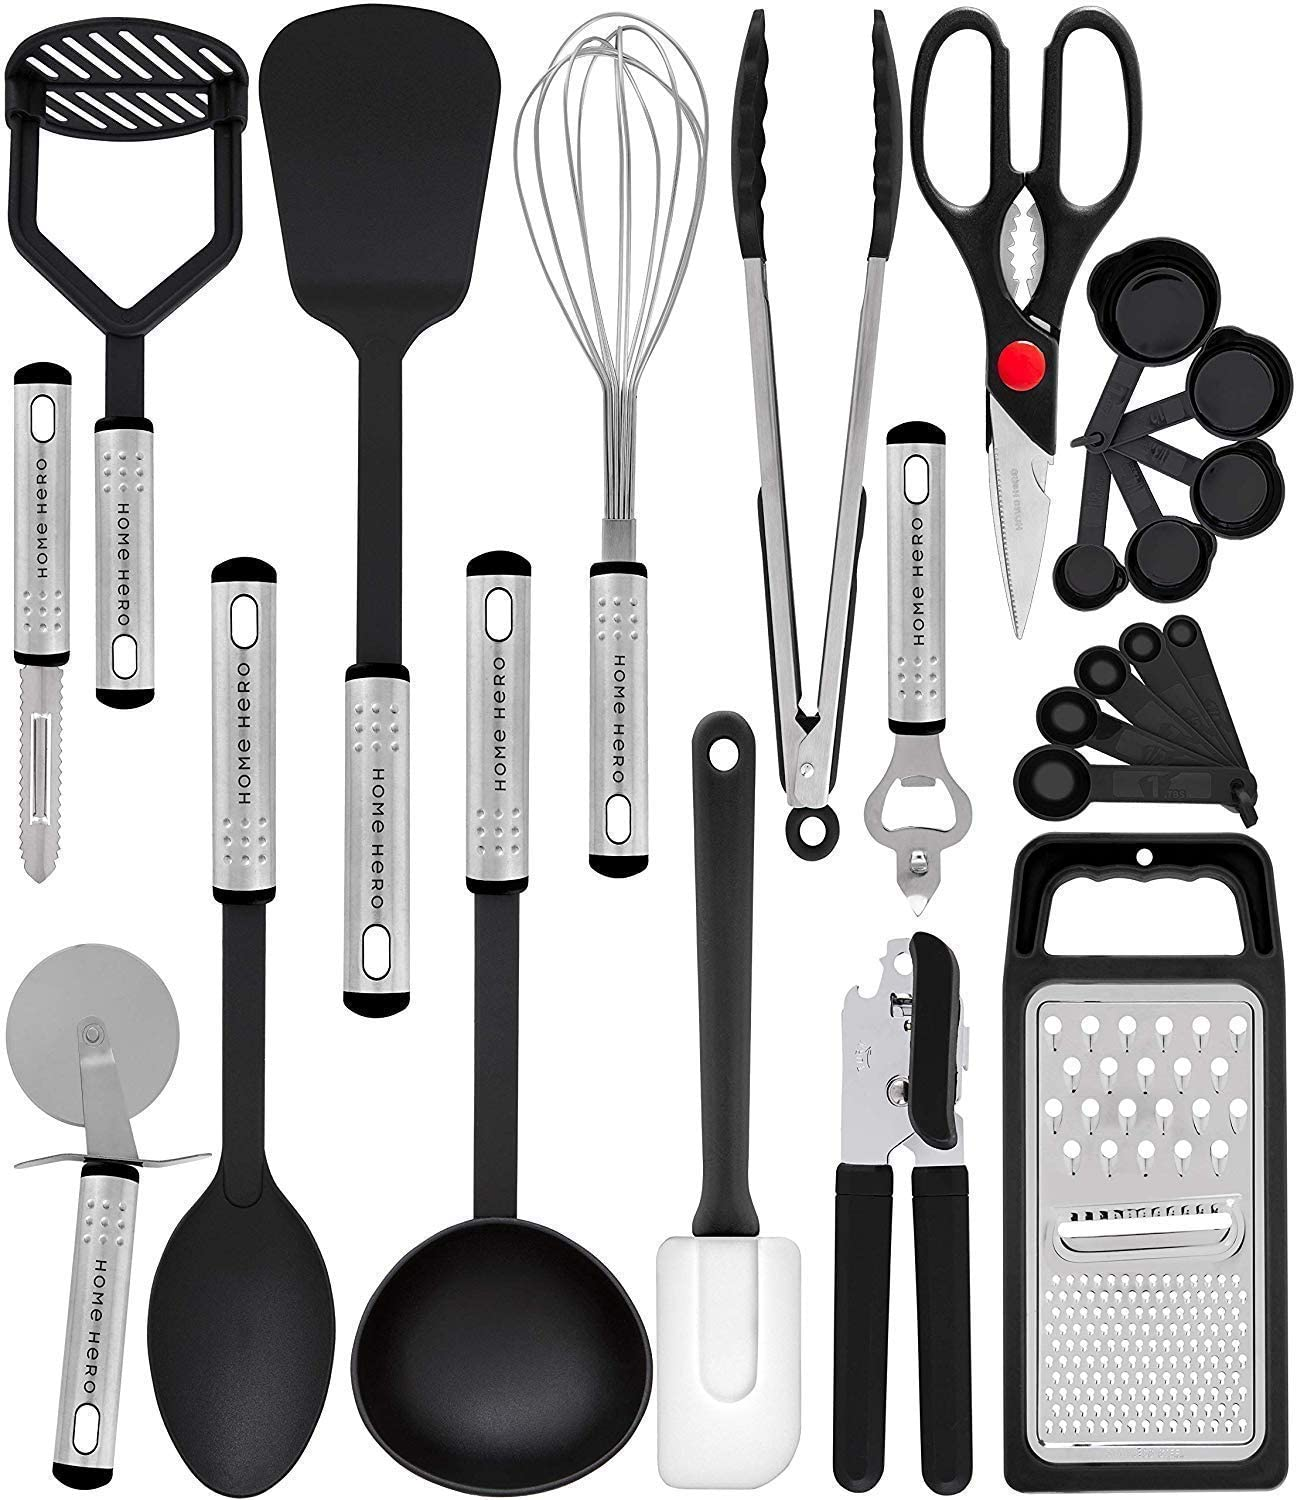 Home Hero Kitchen Utensil Set 23 Nylon Cooking Utensils Kitchen Utensils Ebay